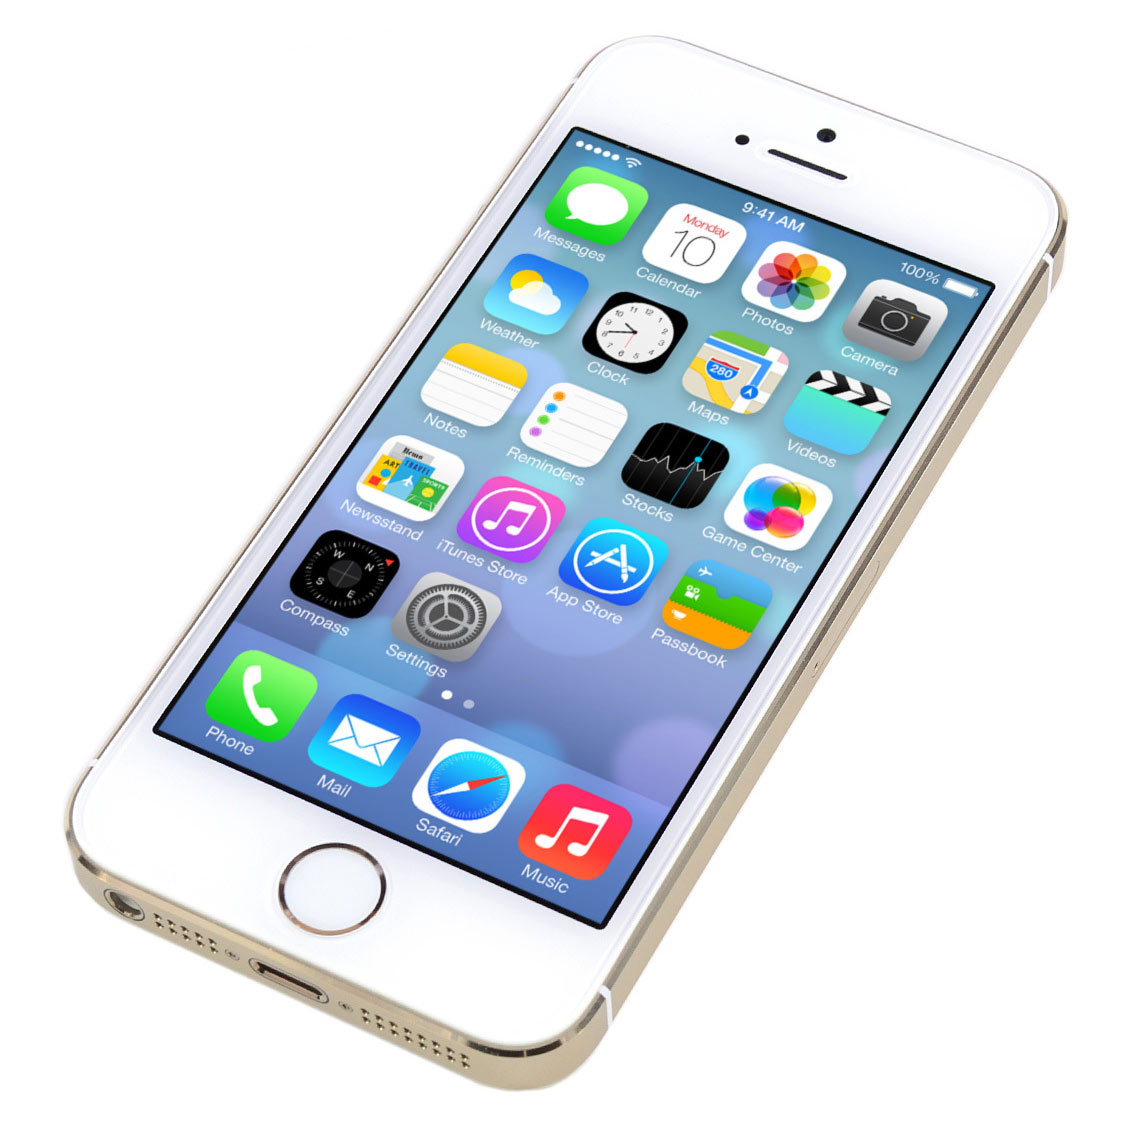 cracked iphone 5s screen iphone 5s screen u c iphone repairs 13902